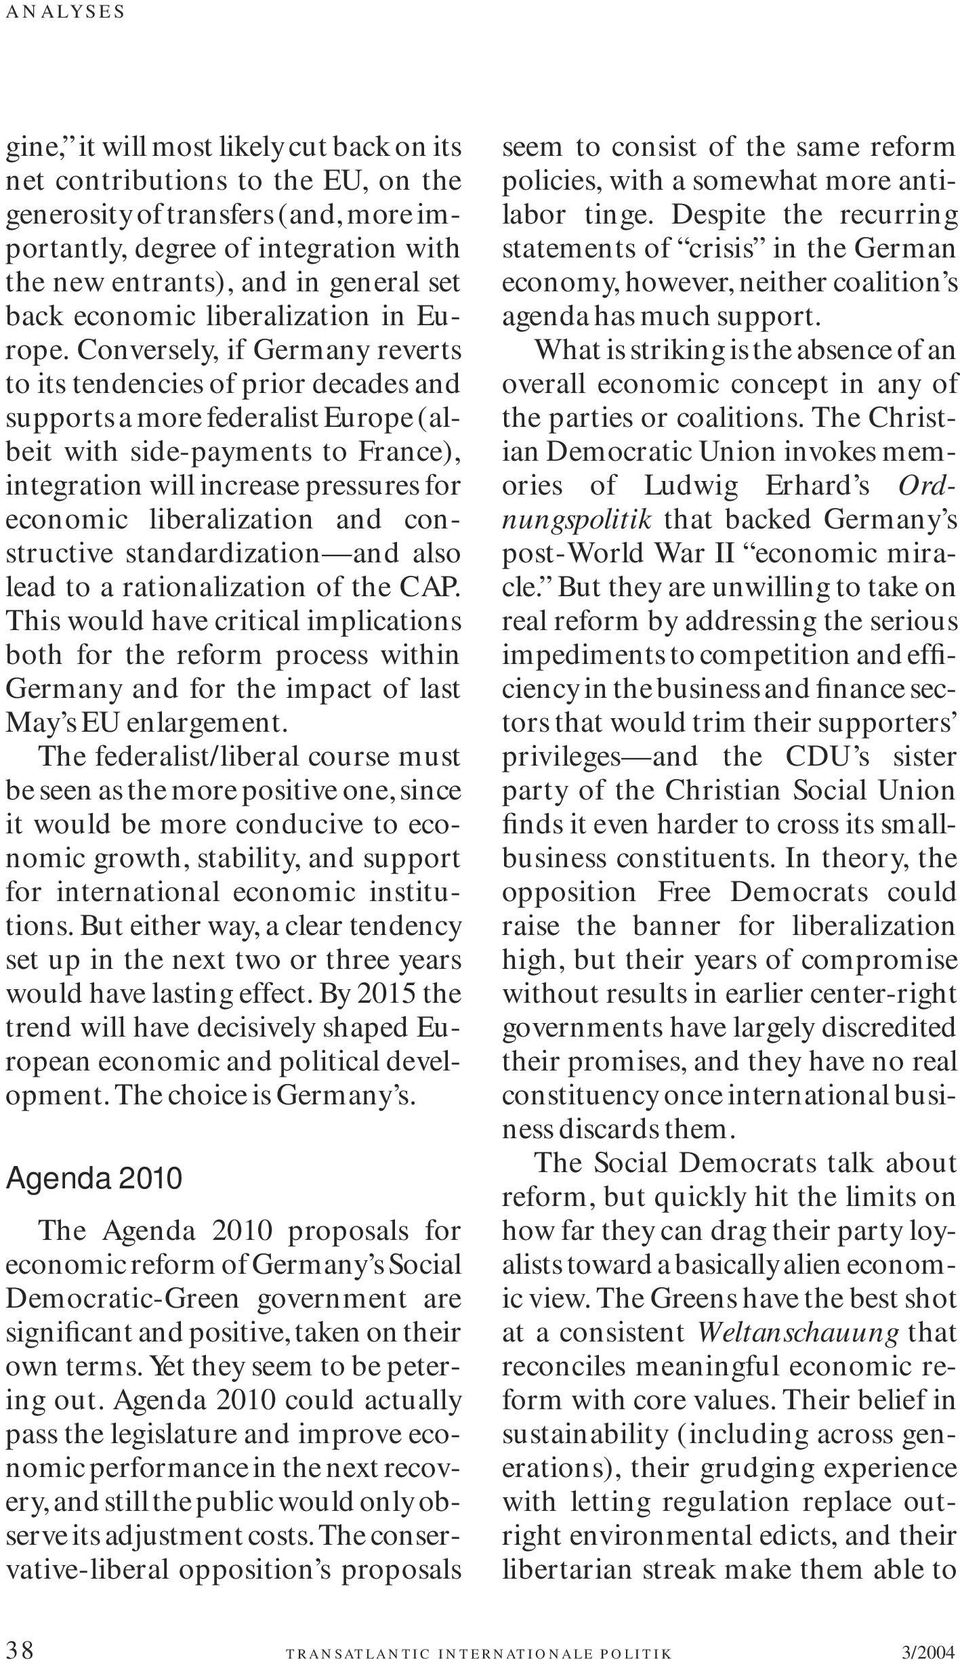 Conversely, if Germany reverts to its tendencies of prior decades and supports a more federalist Europe (albeit with side-payments to France), integration will increase pressures for economic